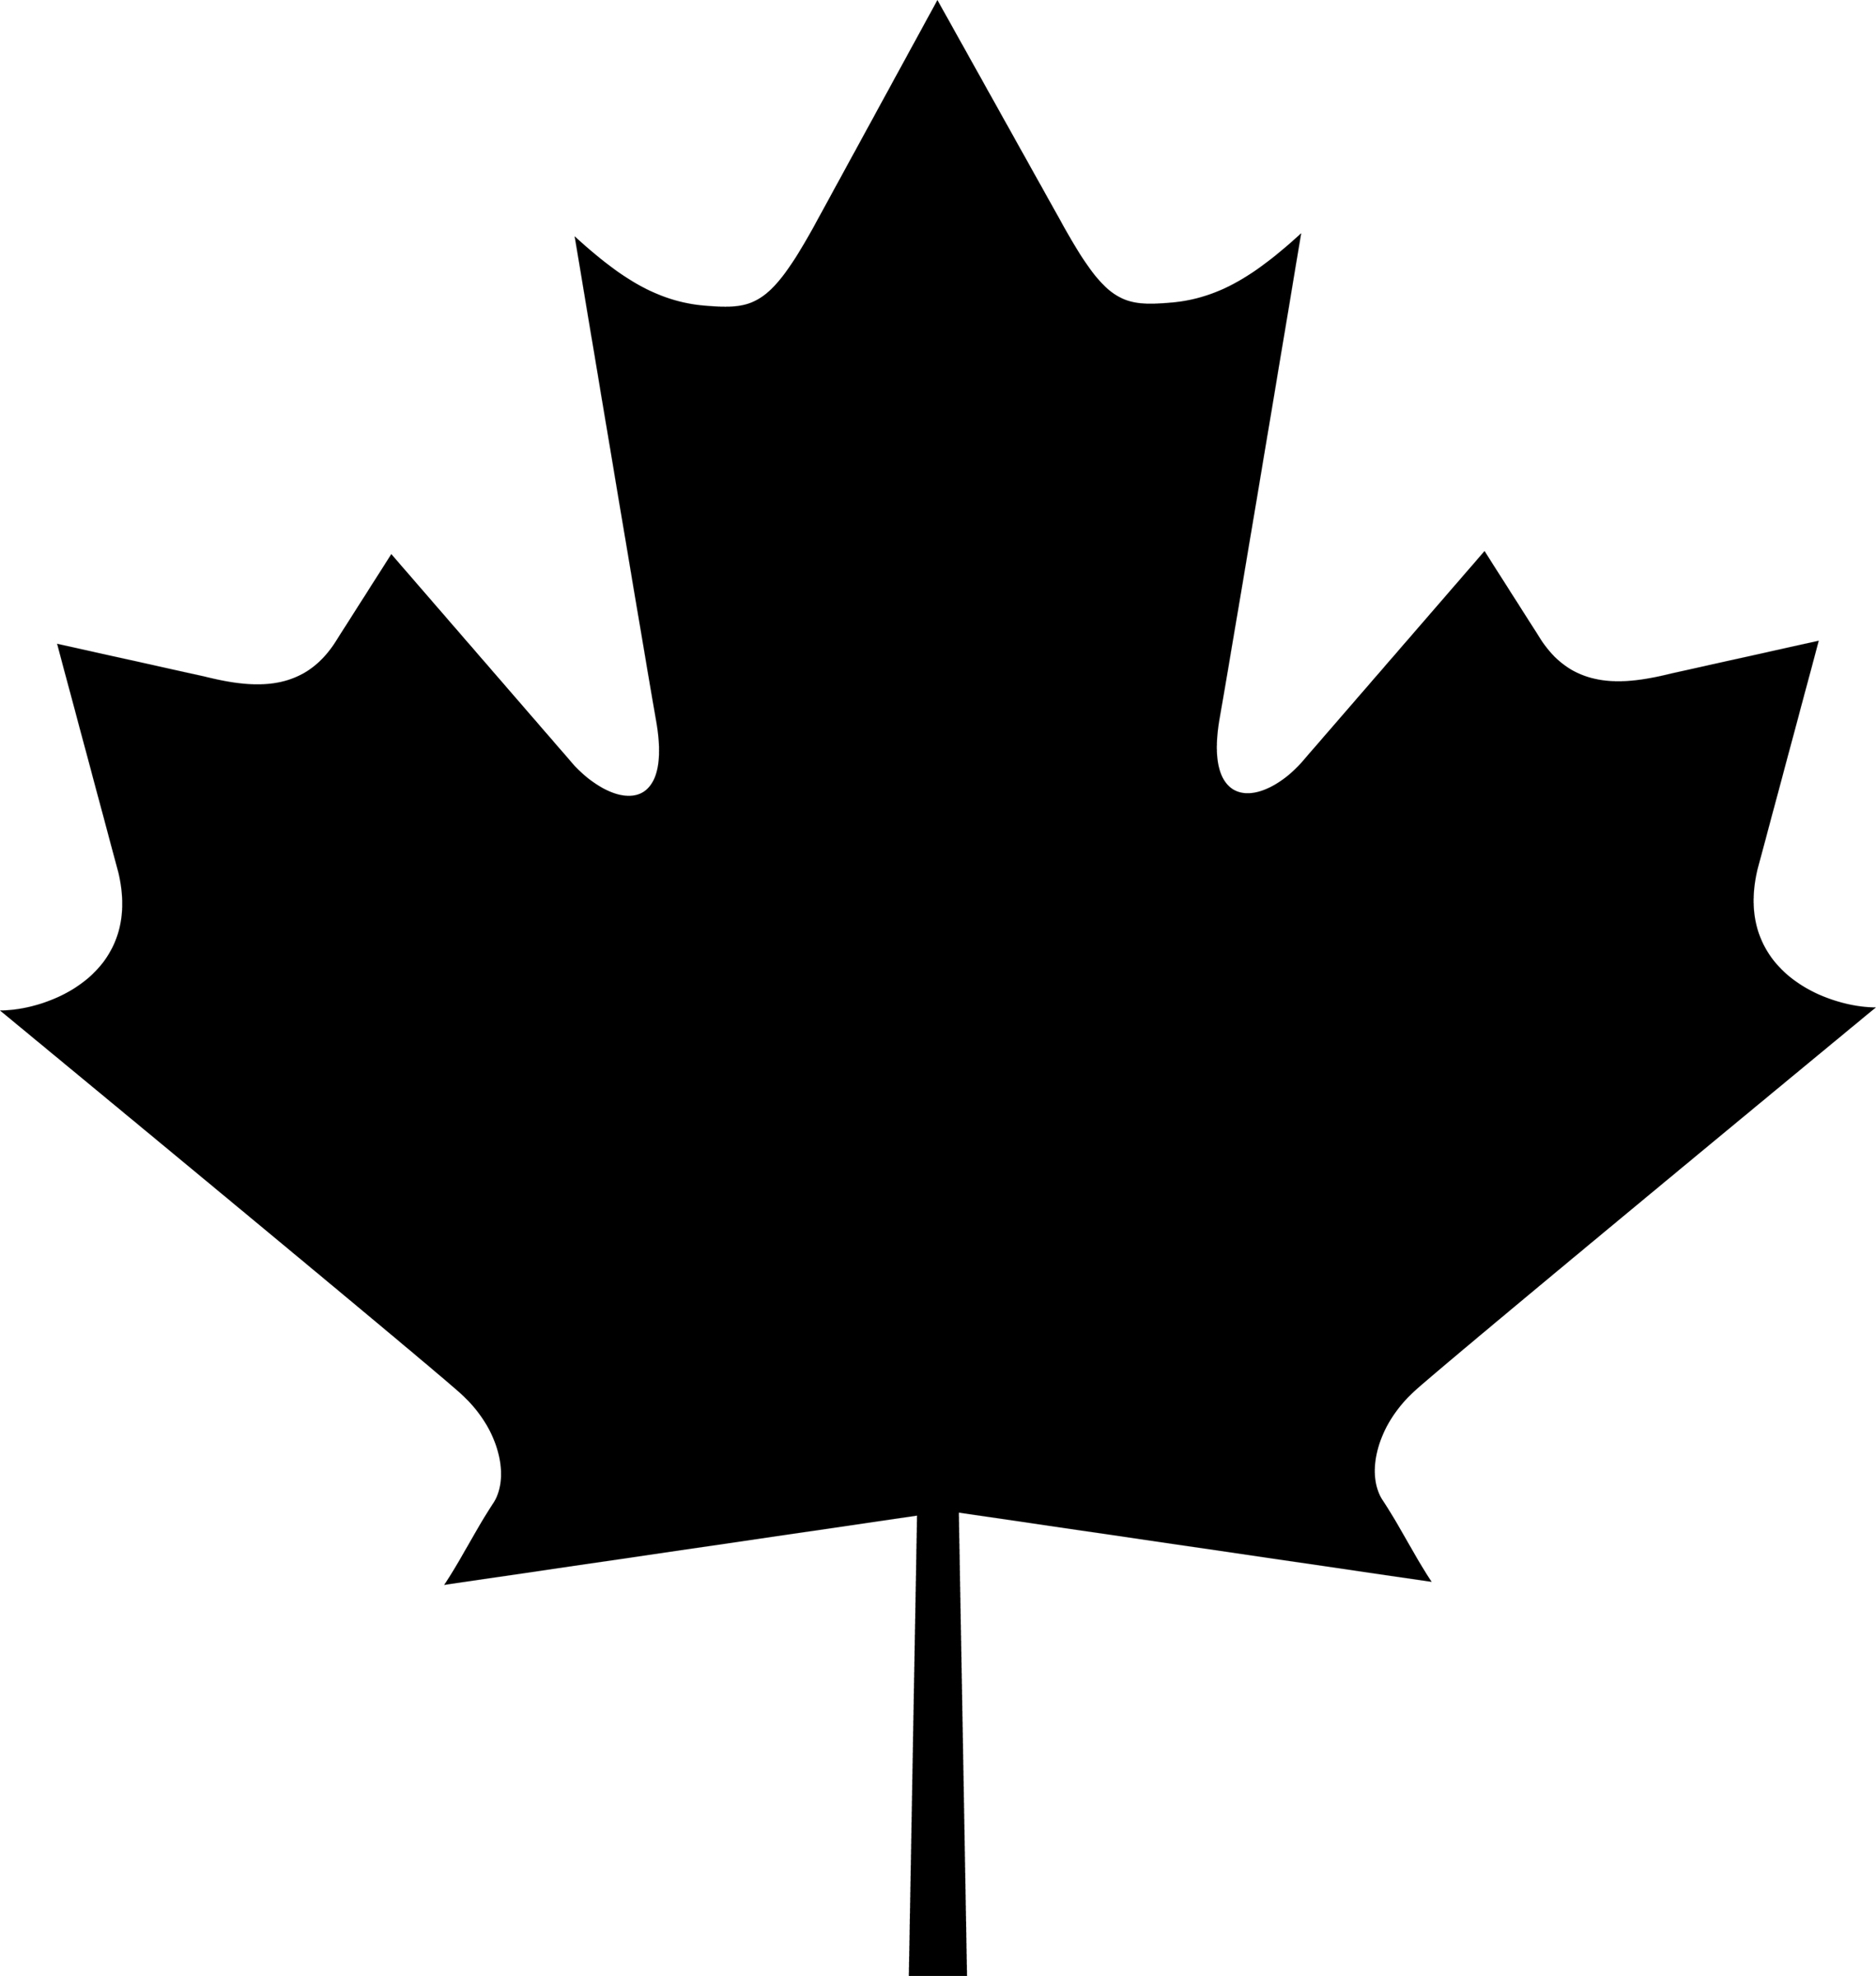 Maple Leaf clipart Clipart Clipart Download Leaf Leaf